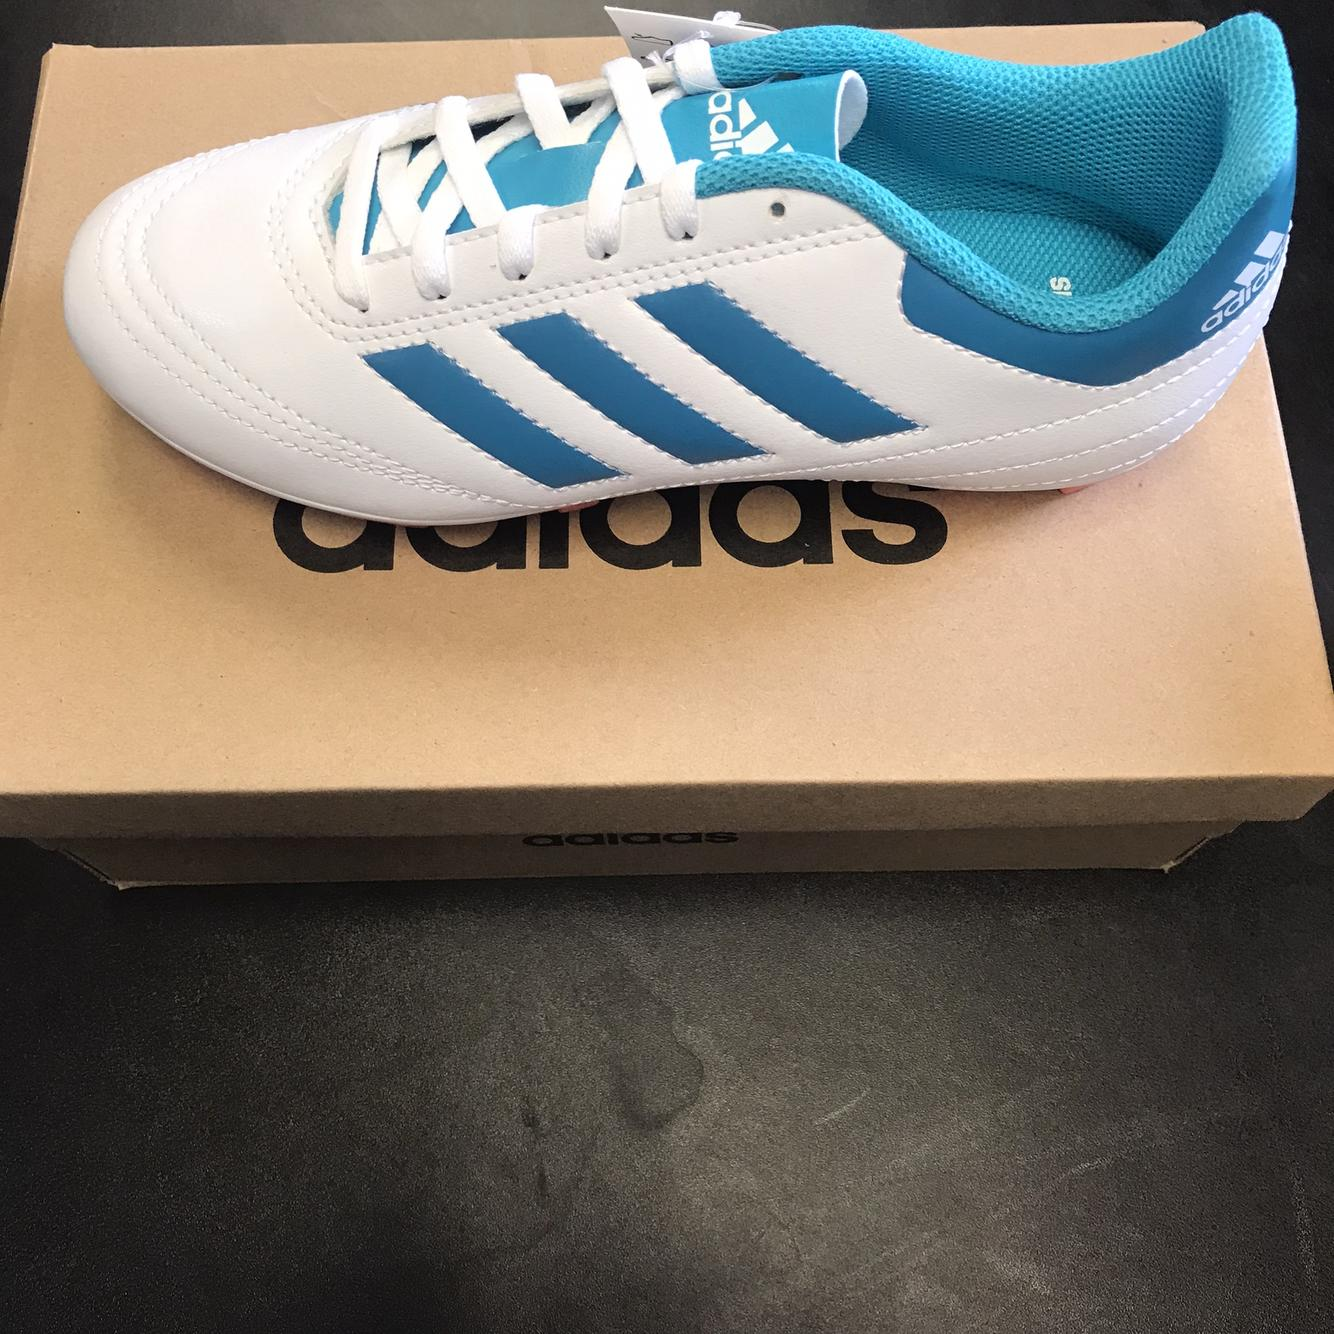 Adidas Women's Molded Cleats Goletto VI